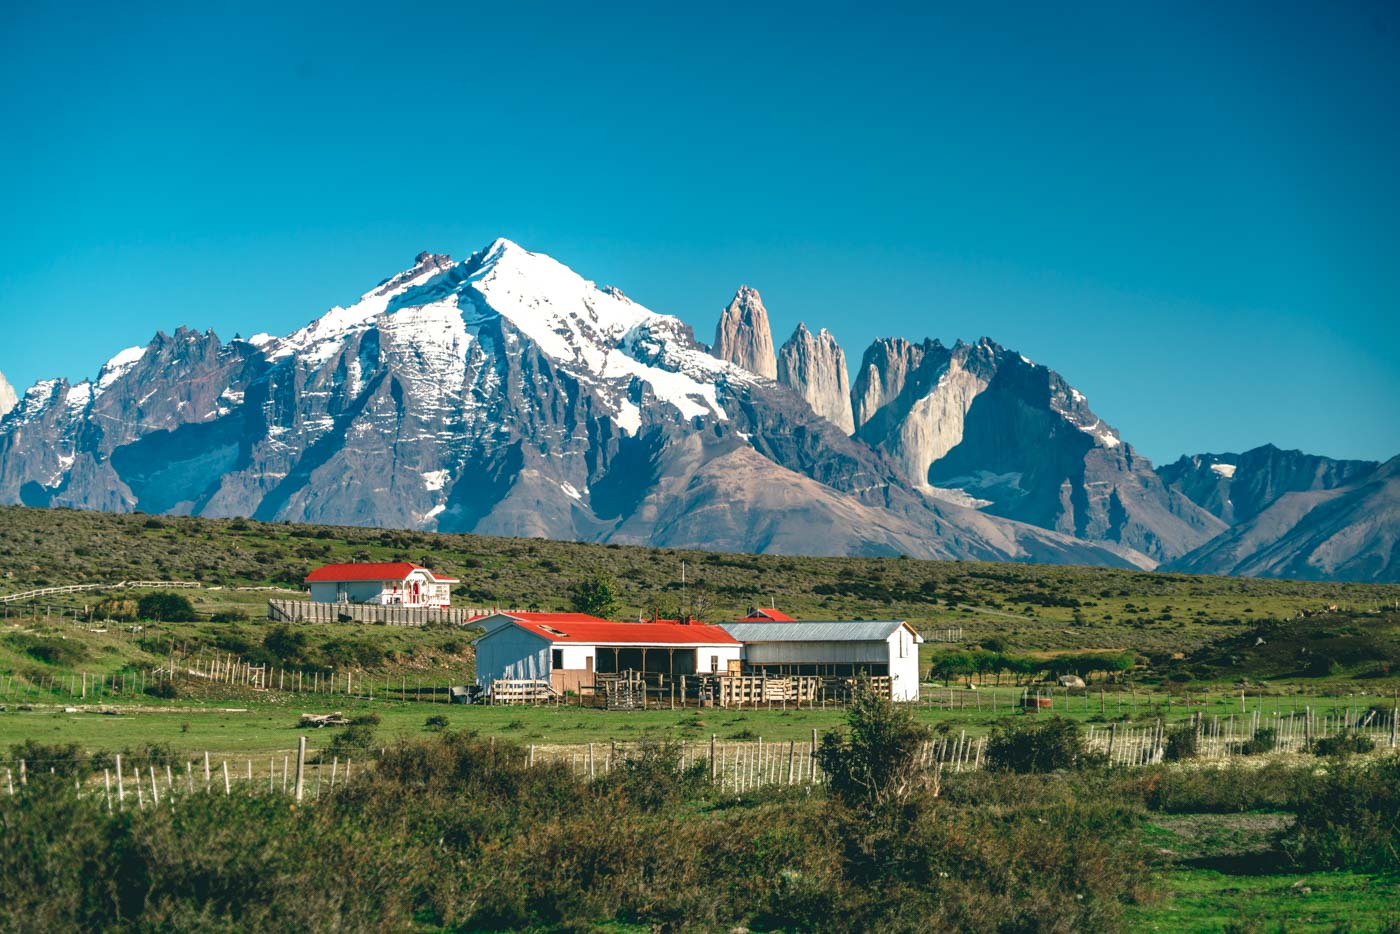 Torres del Paine W Trek Beautiful views of Torres del Paine National Park en route to Baguales. Puerto Natales. Patagonia. Chile